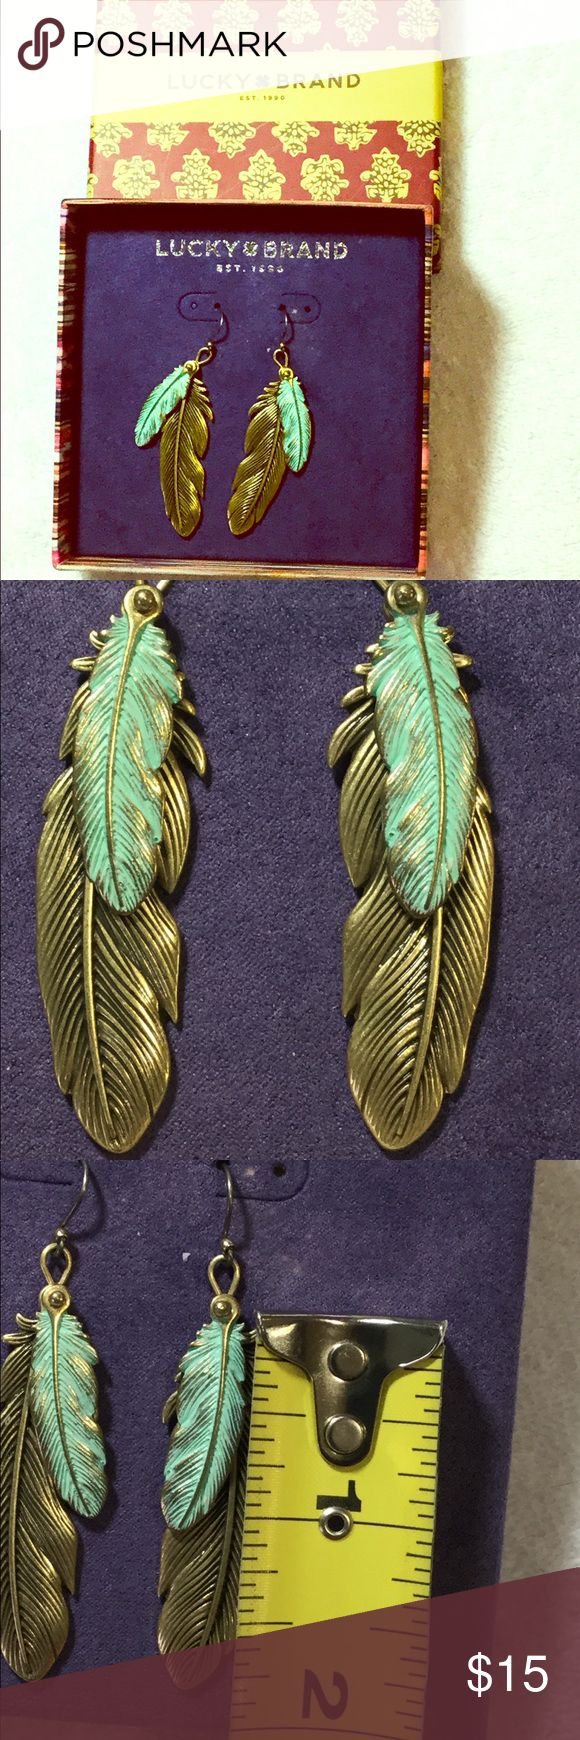 Lucky brand boho feather festival earrings Lucky brand boho metal feather earrings. Brand New!  Antique gold finish and painted turquoise metal. Perfect for upcoming festivals, Coachella, free spirits, and summer time fun! Lucky Brand Jewelry Earrings